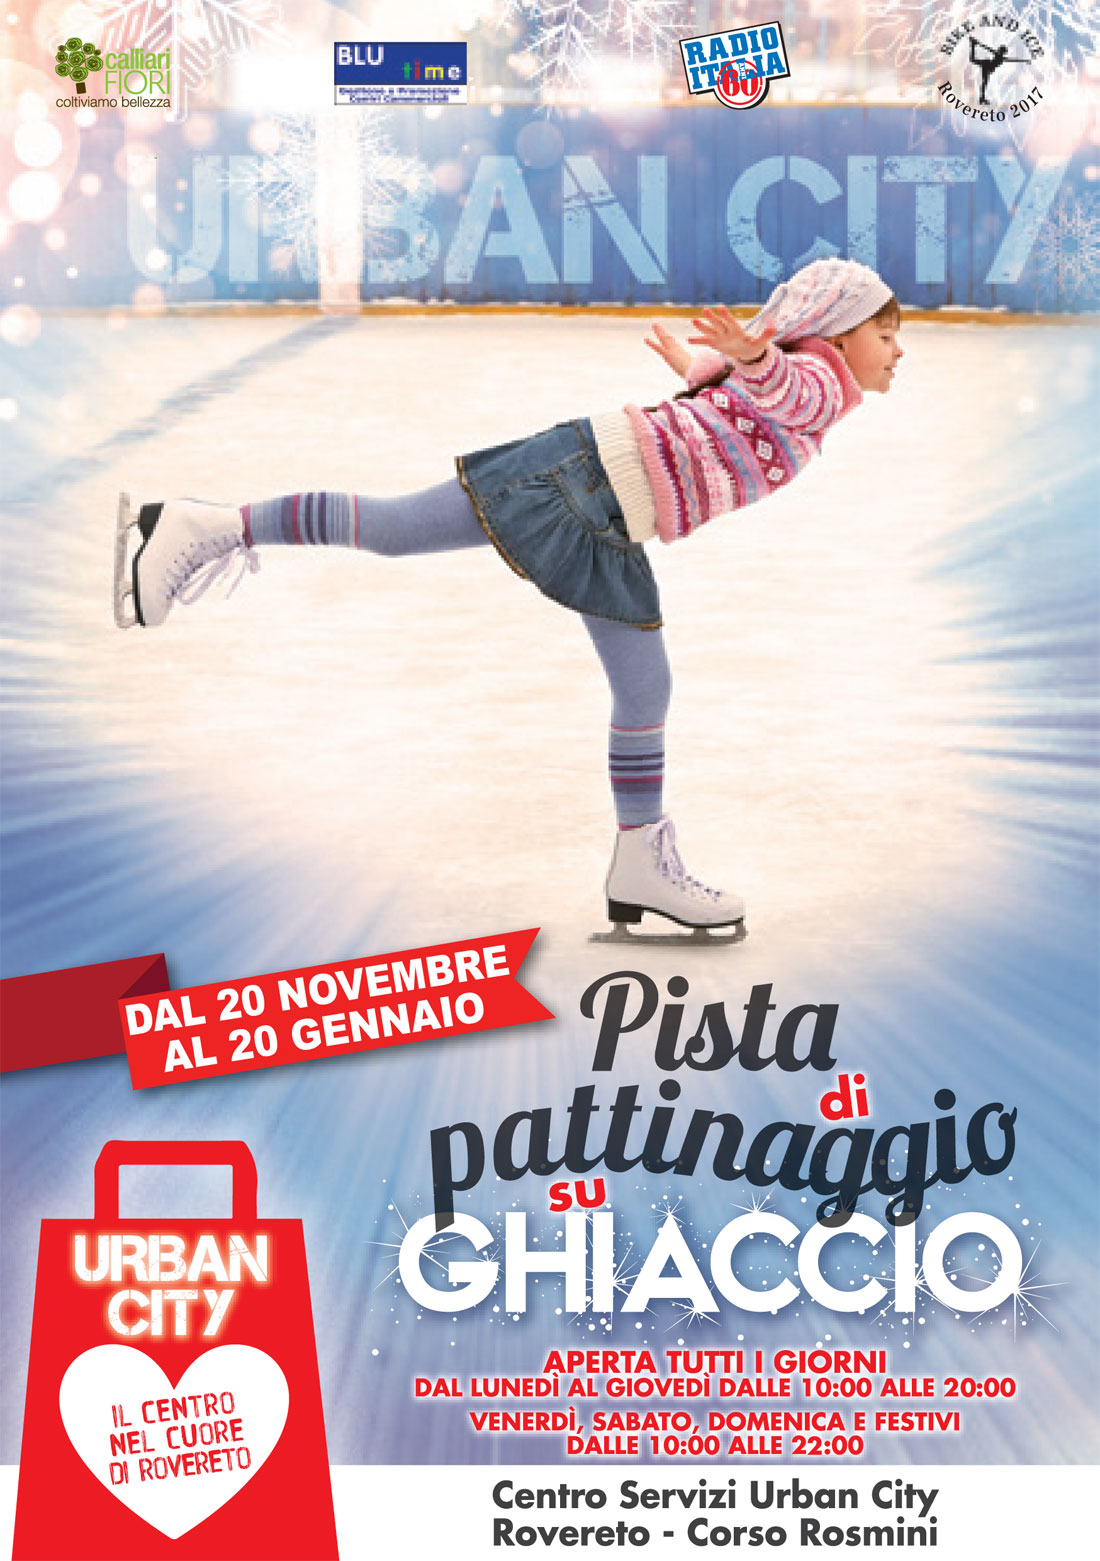 ALL'URBAN CITY DI ROVERETO SI PATTINA